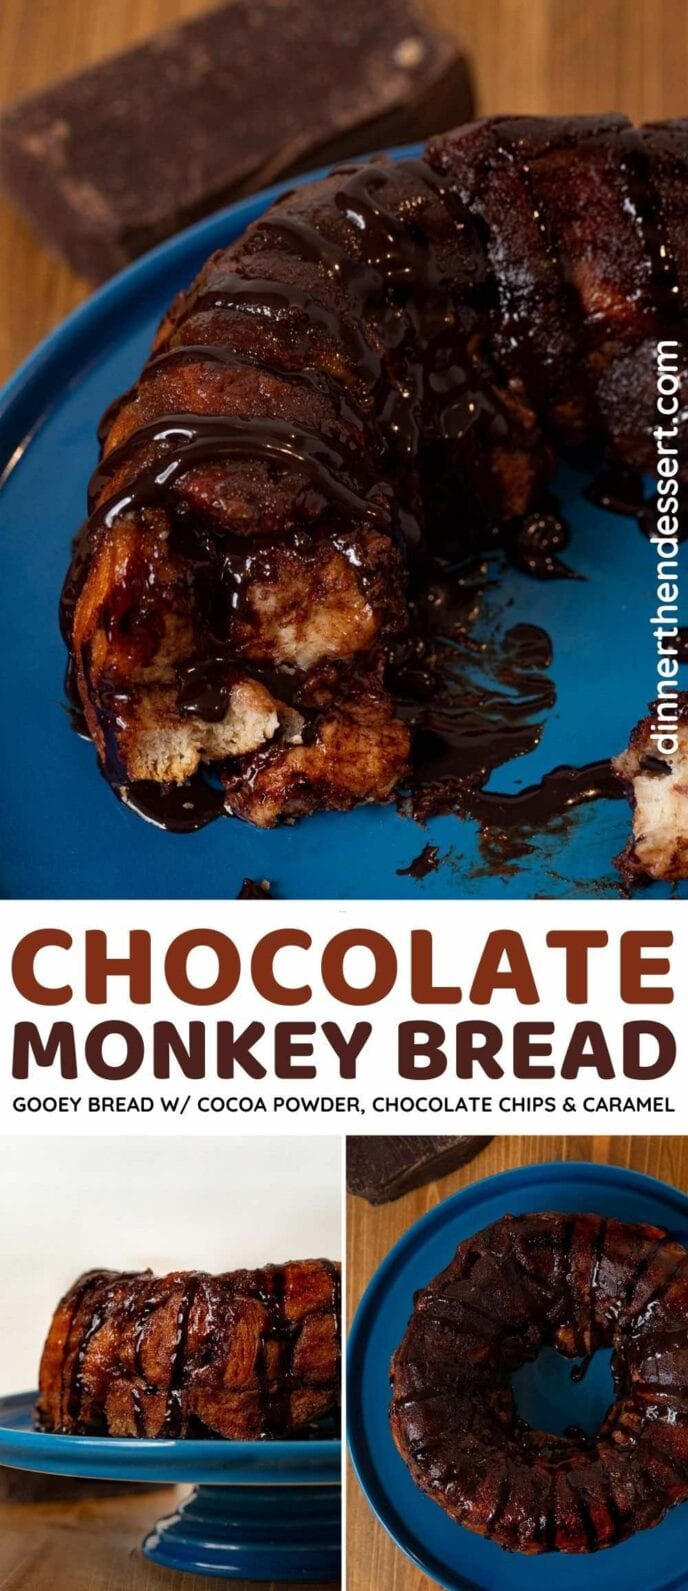 Chocolate Monkey Bread collage